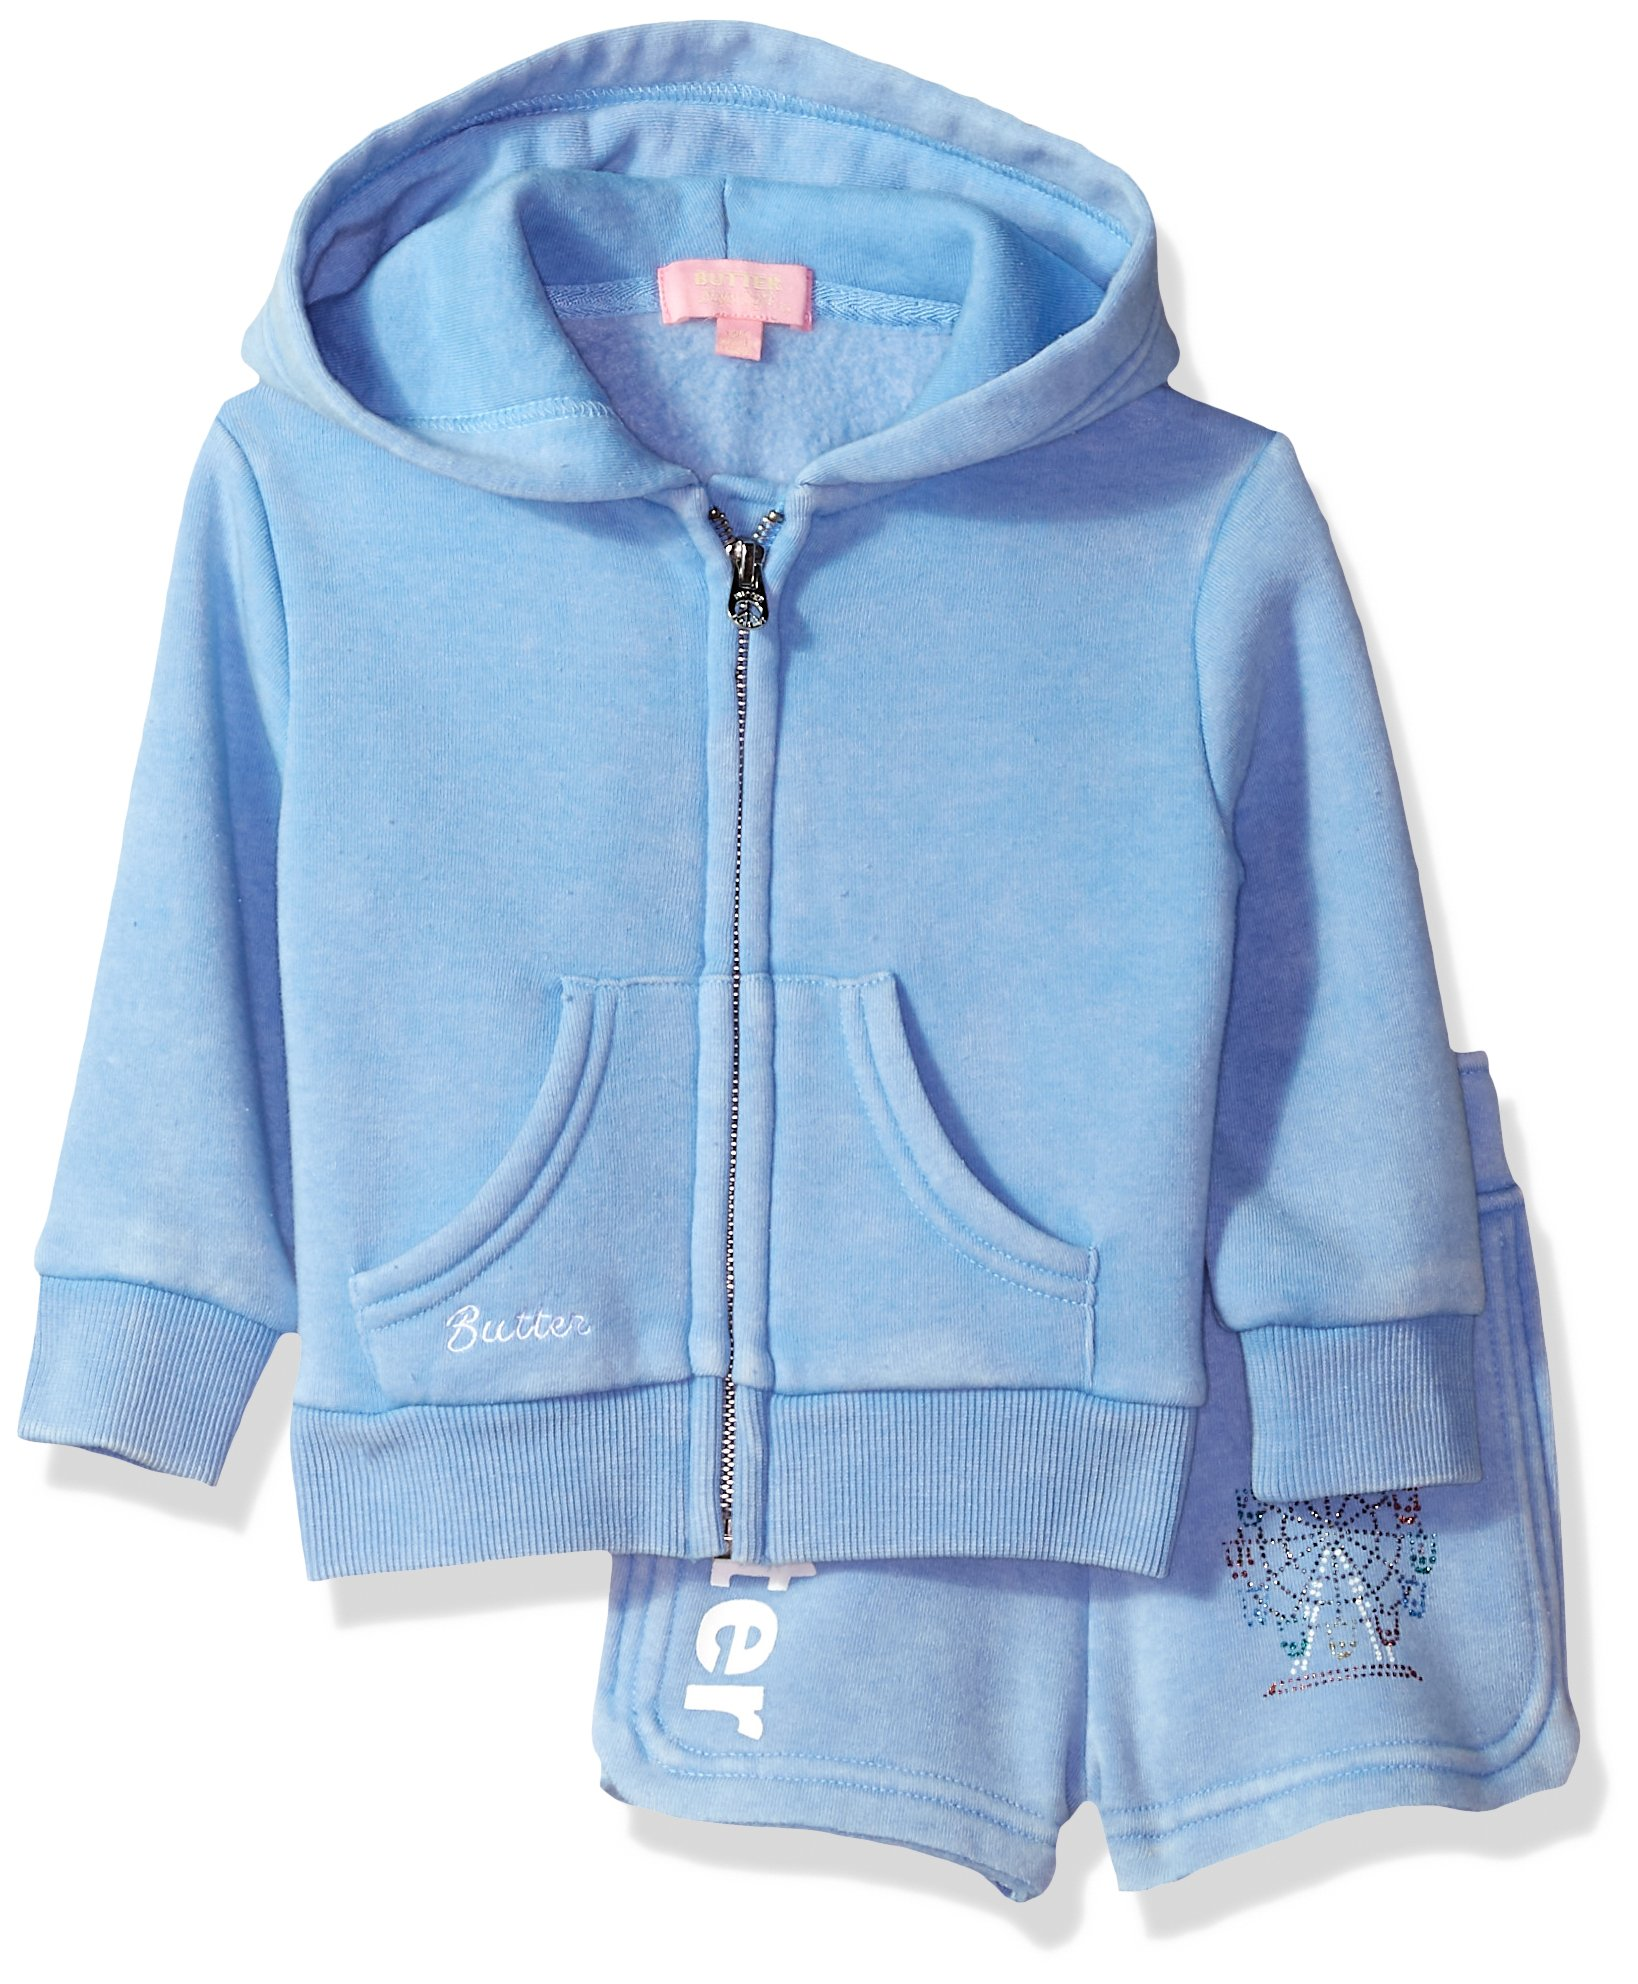 Butter Baby Girls Fleece Set, Della Robbia Blue, 18M by Butter